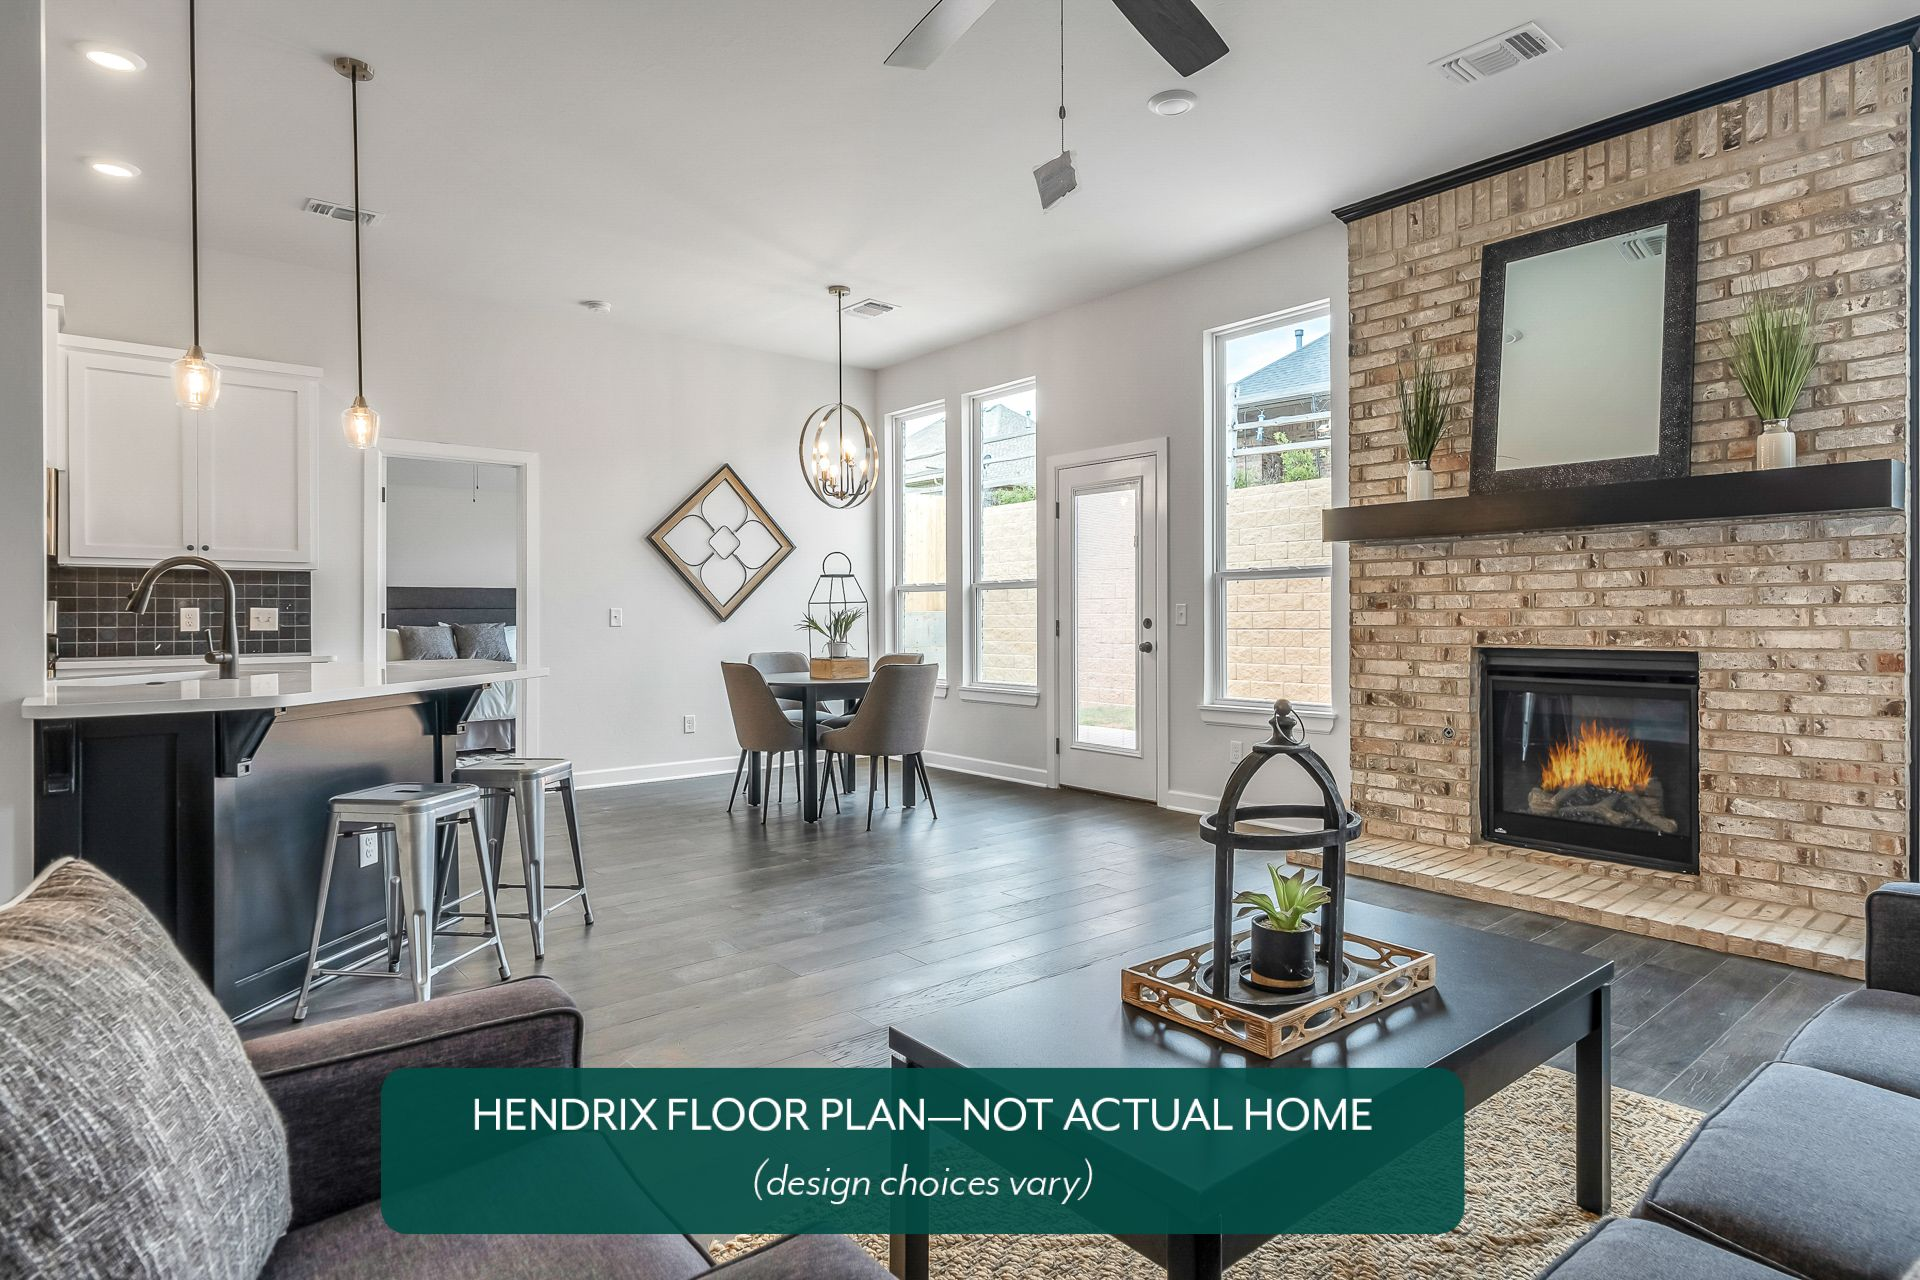 Living Area featured in the 612 Firefork Avenue By Ideal Homes in Oklahoma City, OK